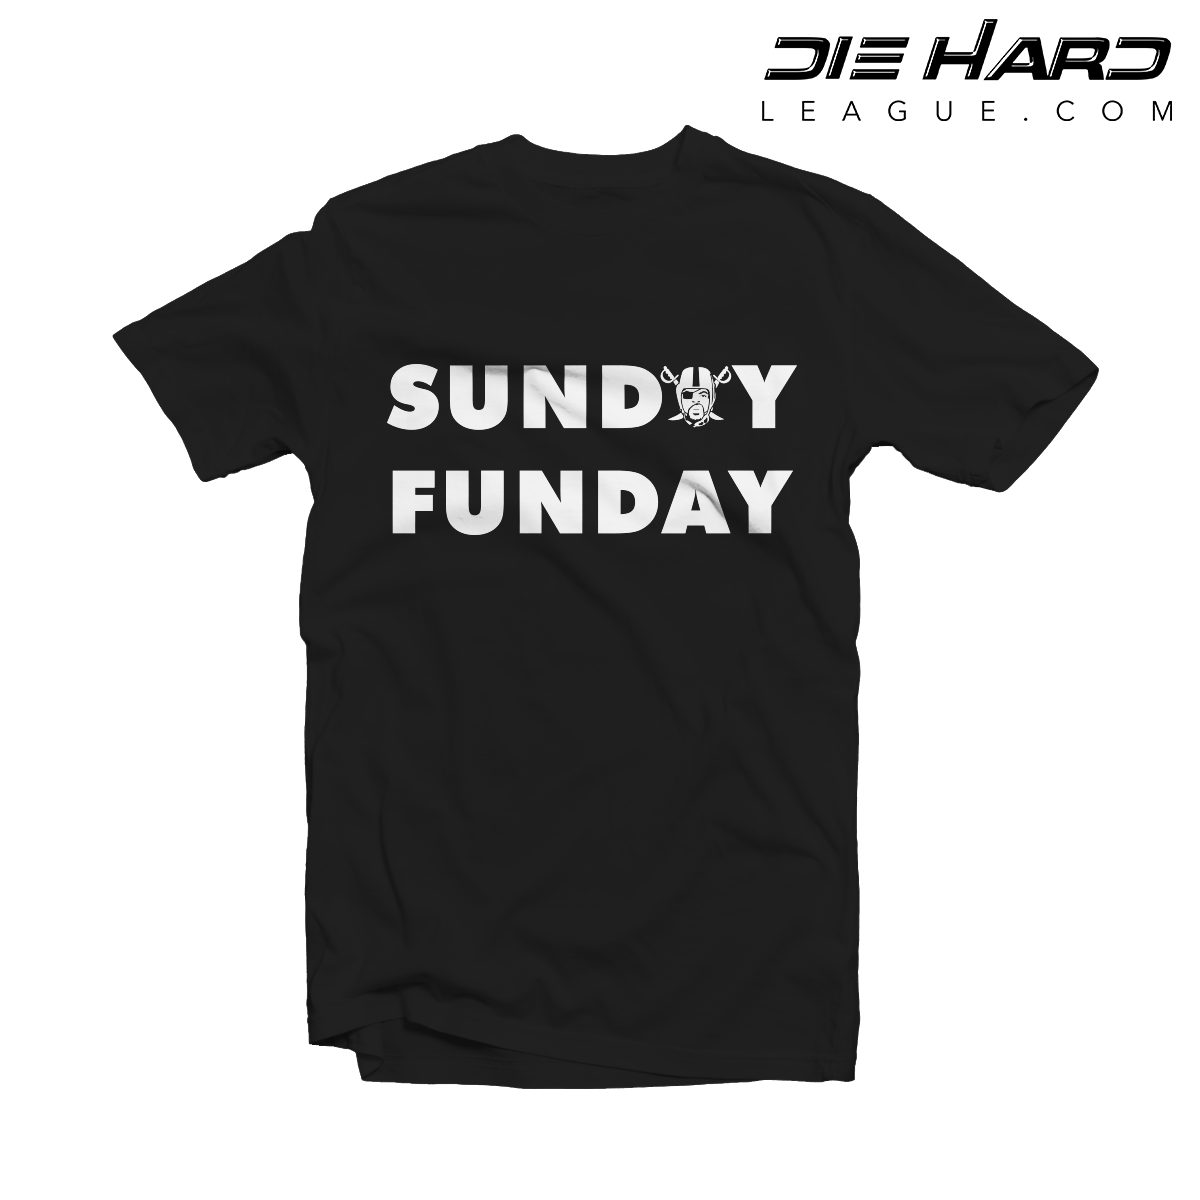 56e03c62da6 Raiders T Shirts- Oakland Raiders Sunday Funday Black Tee